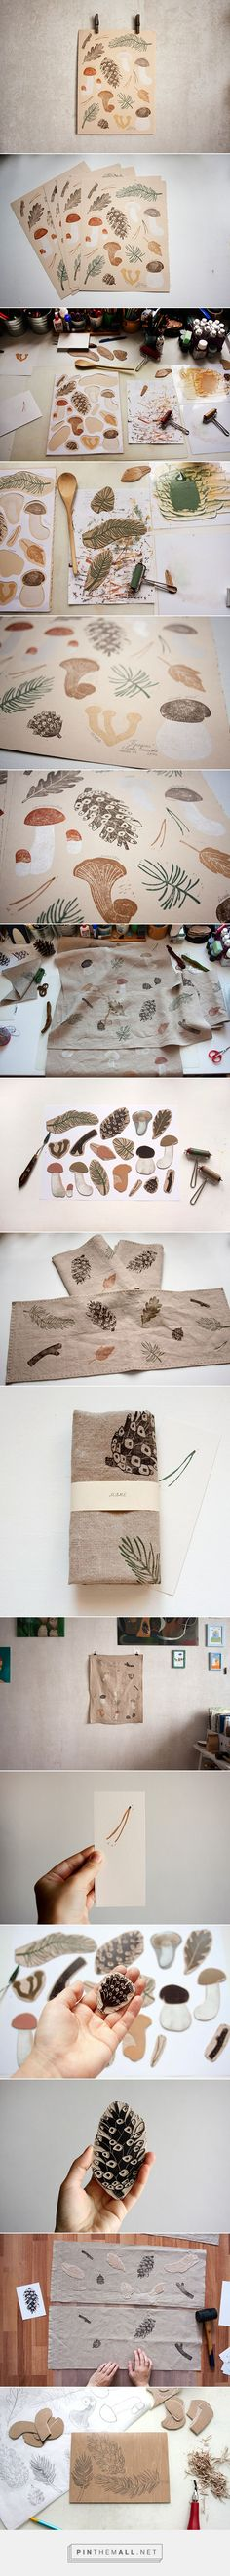 forest prints on paper and fabric by Olga Ezova-Denisova